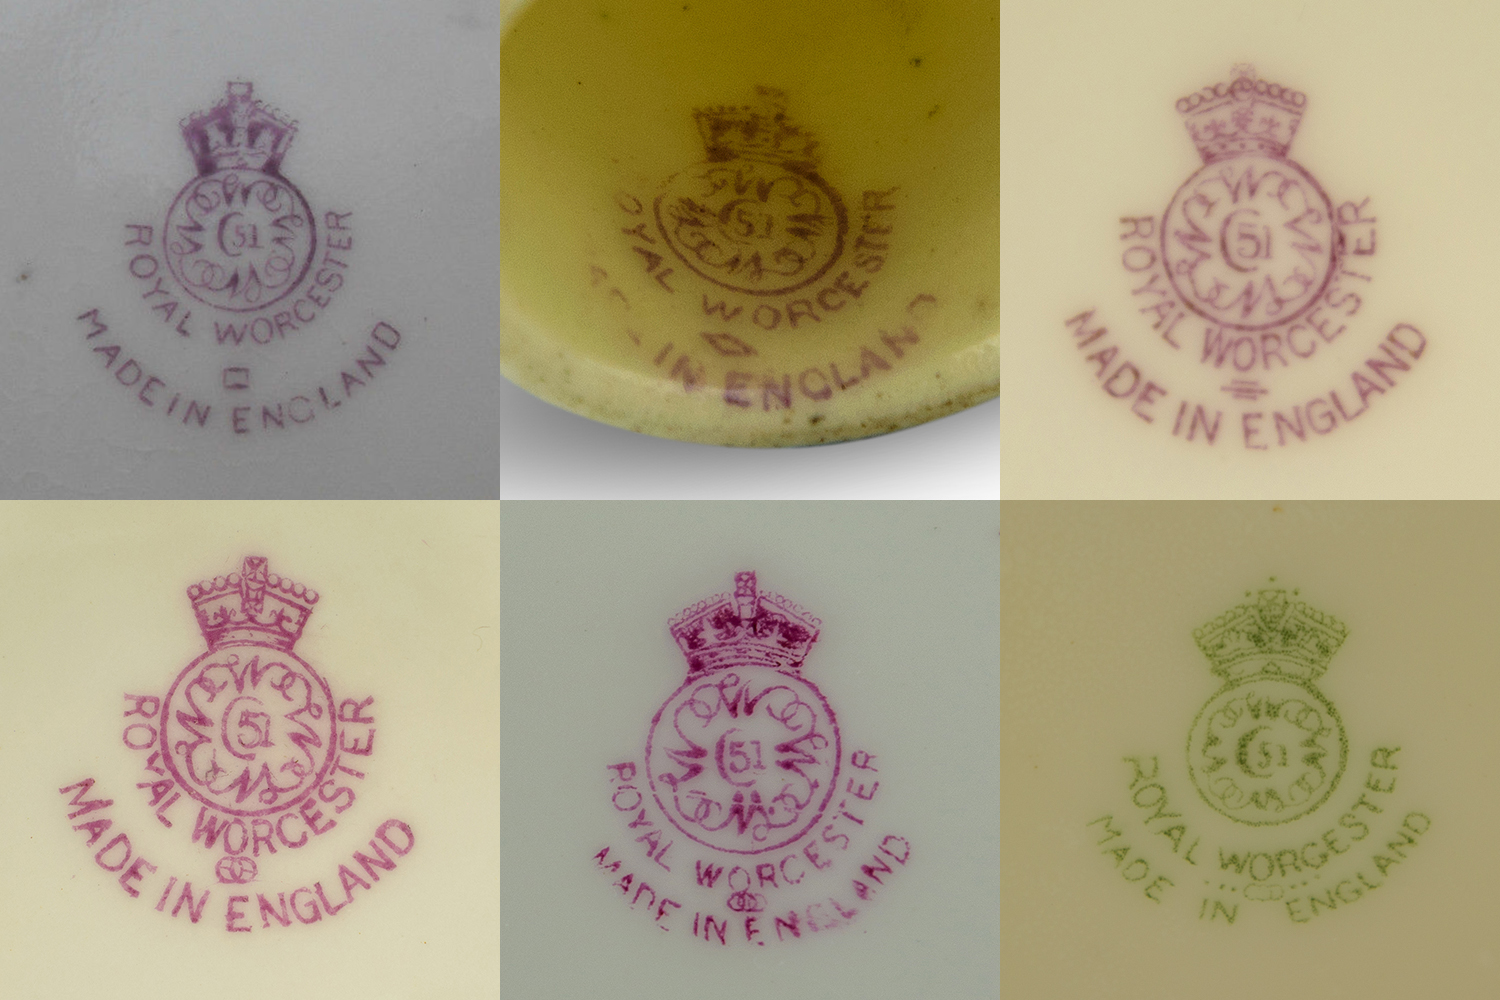 Royal Worcester marks circa 1930's, top row 1928, 1929, 1930. Bottom row 1931, 1932 and 1938